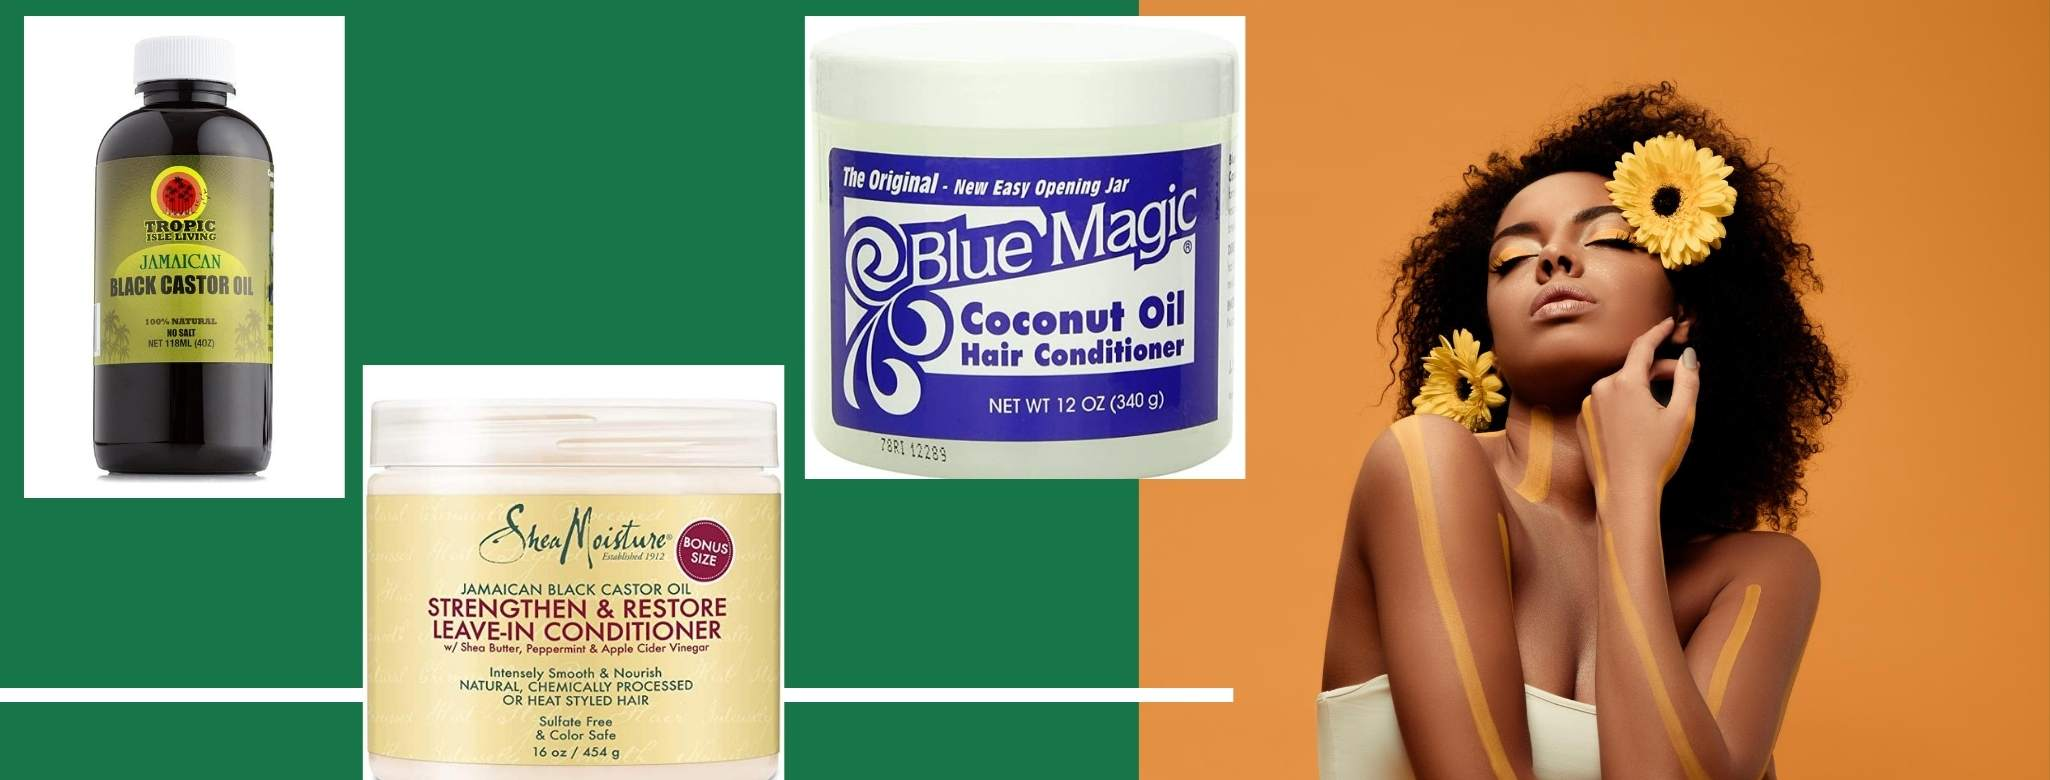 Tested and Trusted Black Hair Care and Protective Styling Products